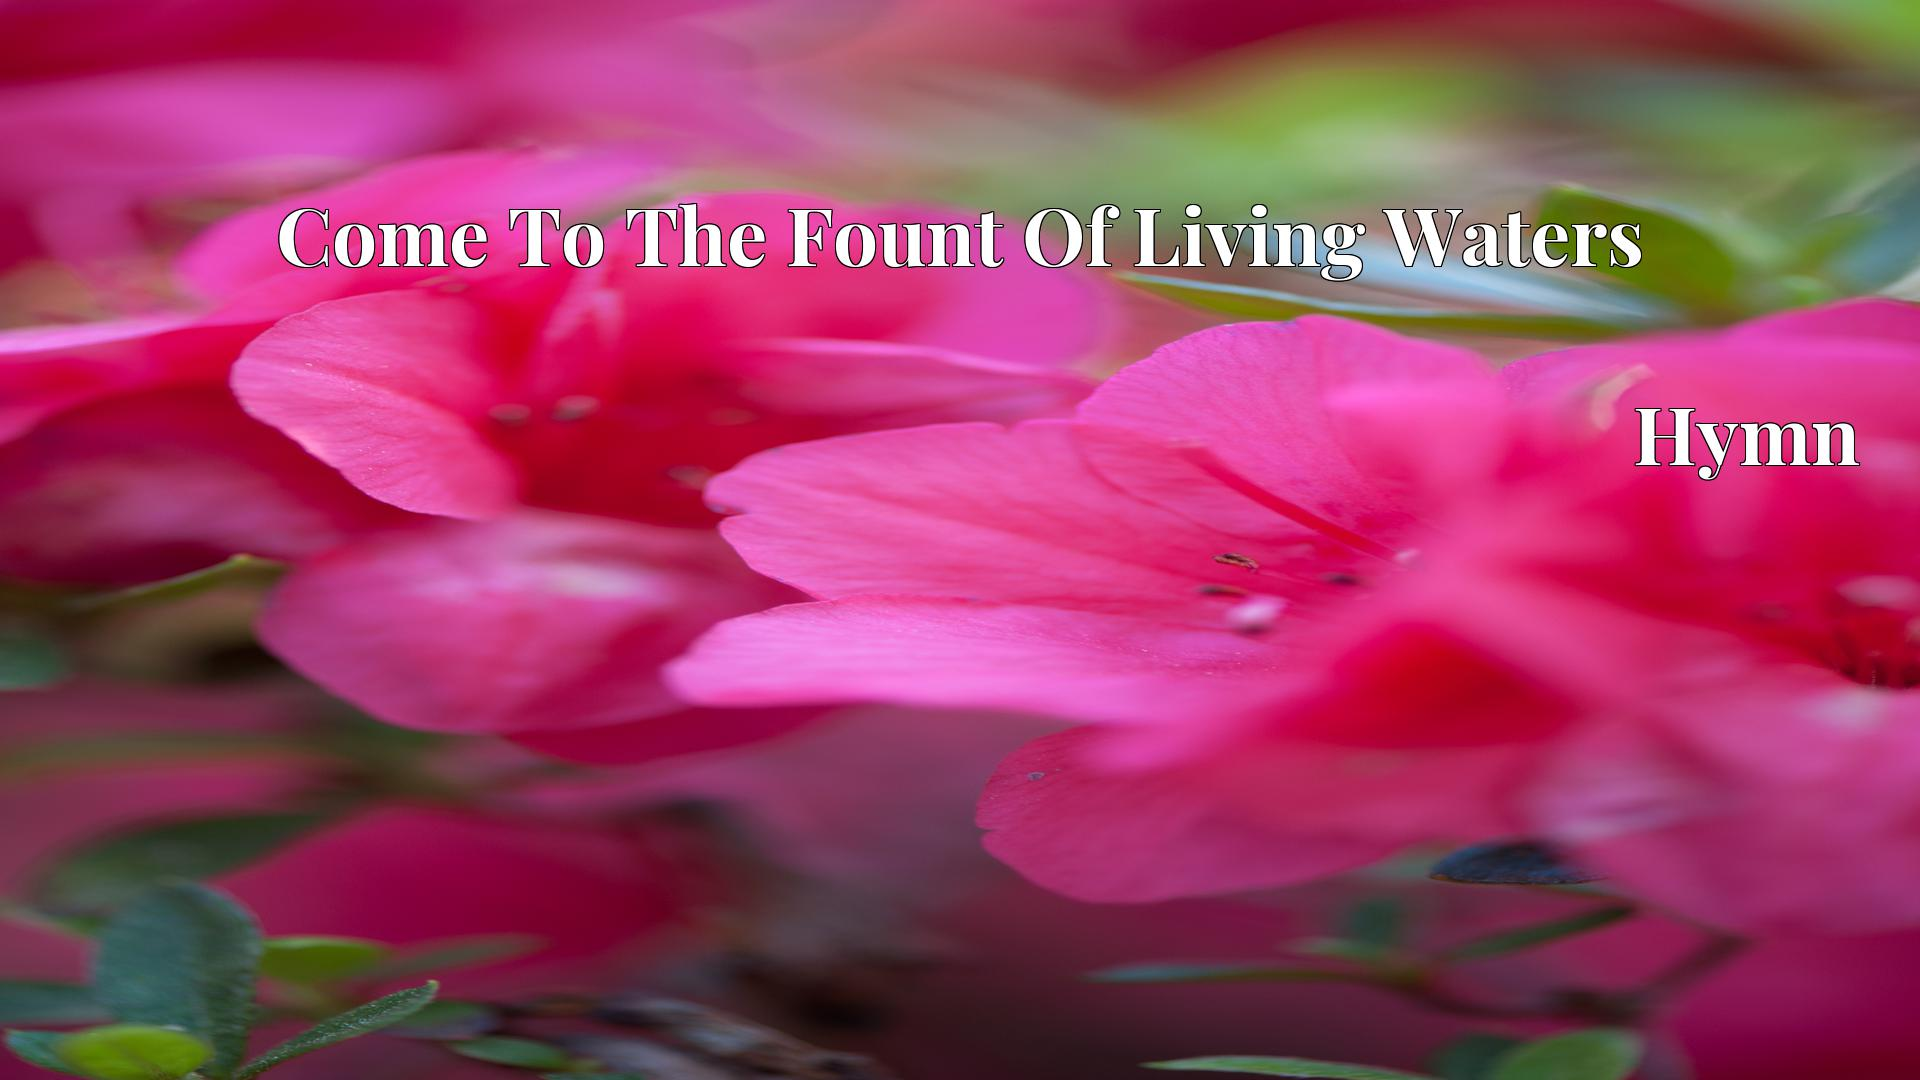 Come To The Fount Of Living Waters - Hymn